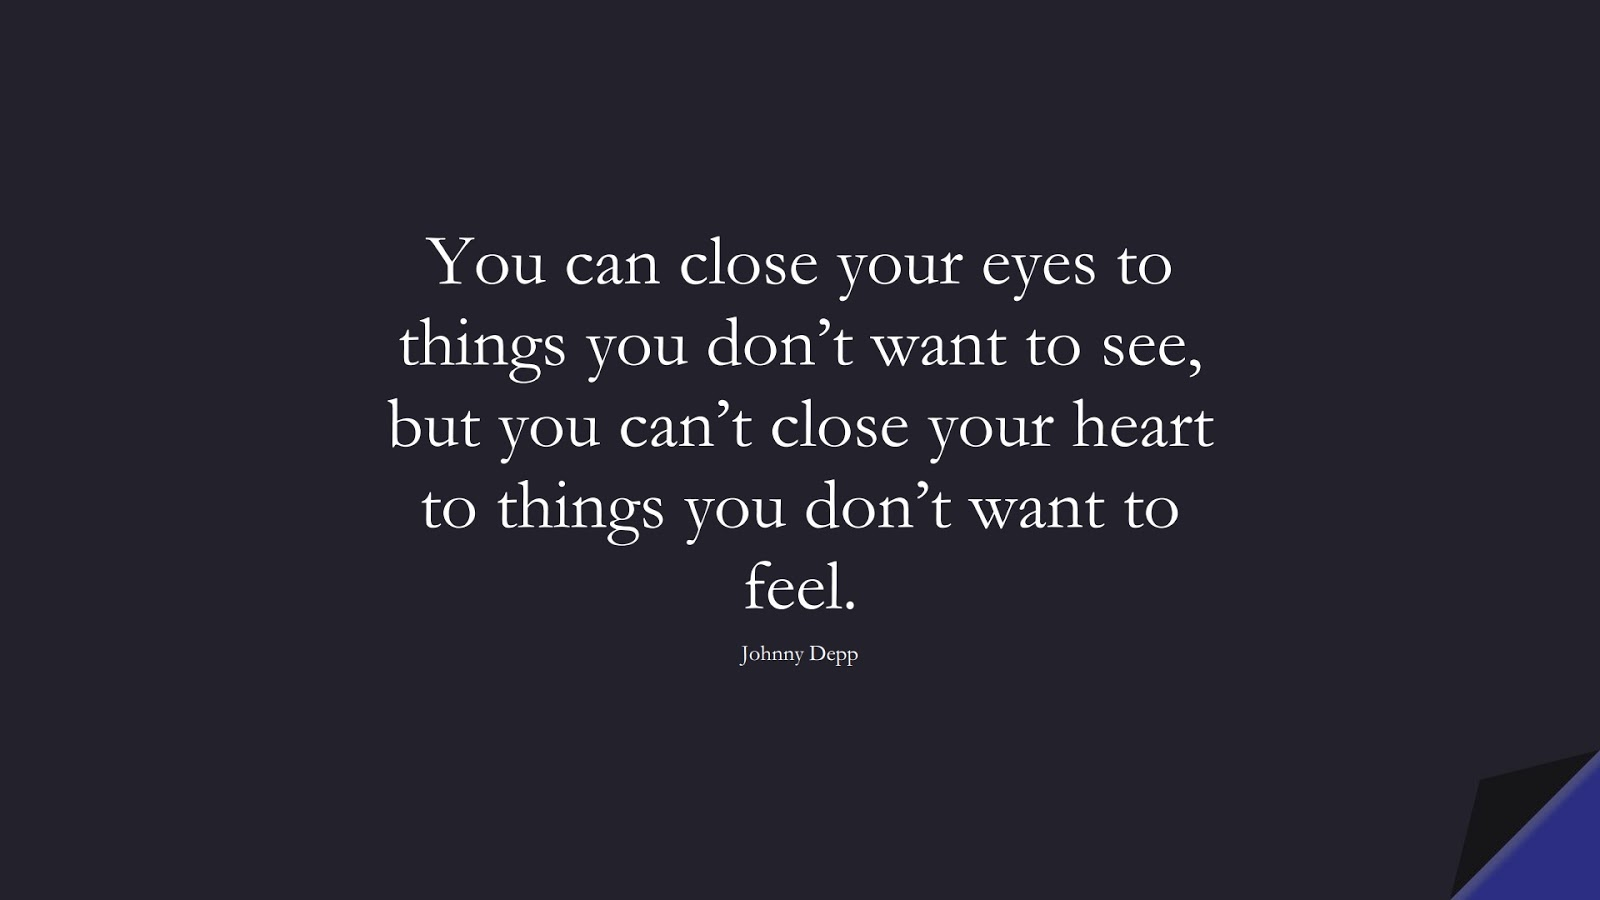 You can close your eyes to things you don't want to see, but you can't close your heart to things you don't want to feel. (Johnny Depp);  #SadLoveQuotes